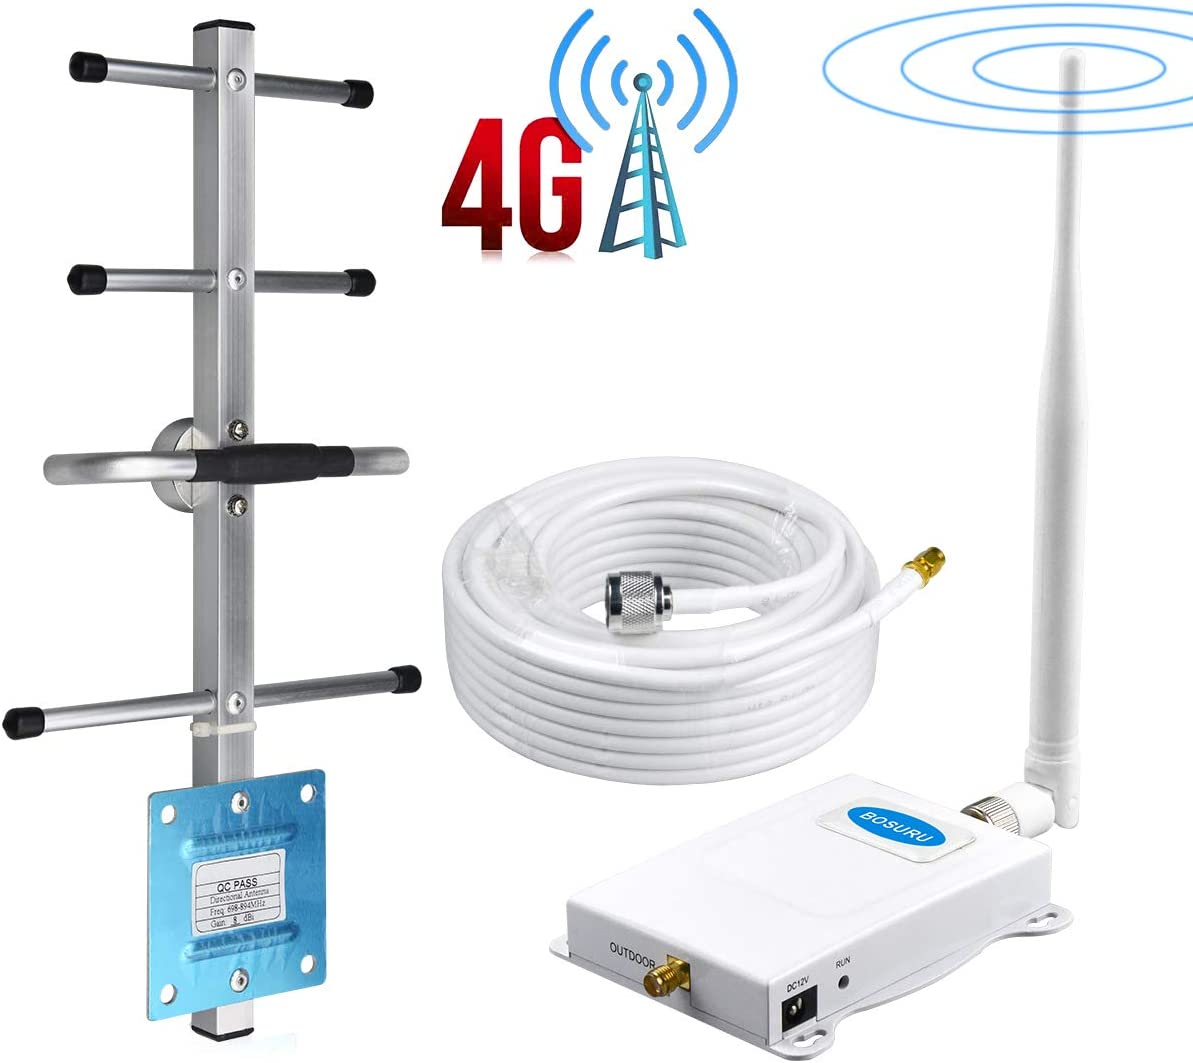 Verizon Cell Phone Signal Booster 4G LTE Band 13 700Mhz Verizon Cell Signal Booster Verizon Cell Phone Signal Amplifier Repeater Home Mobile Signal Booster Improve Voice//Data Whip+Yagi Antennas Kit